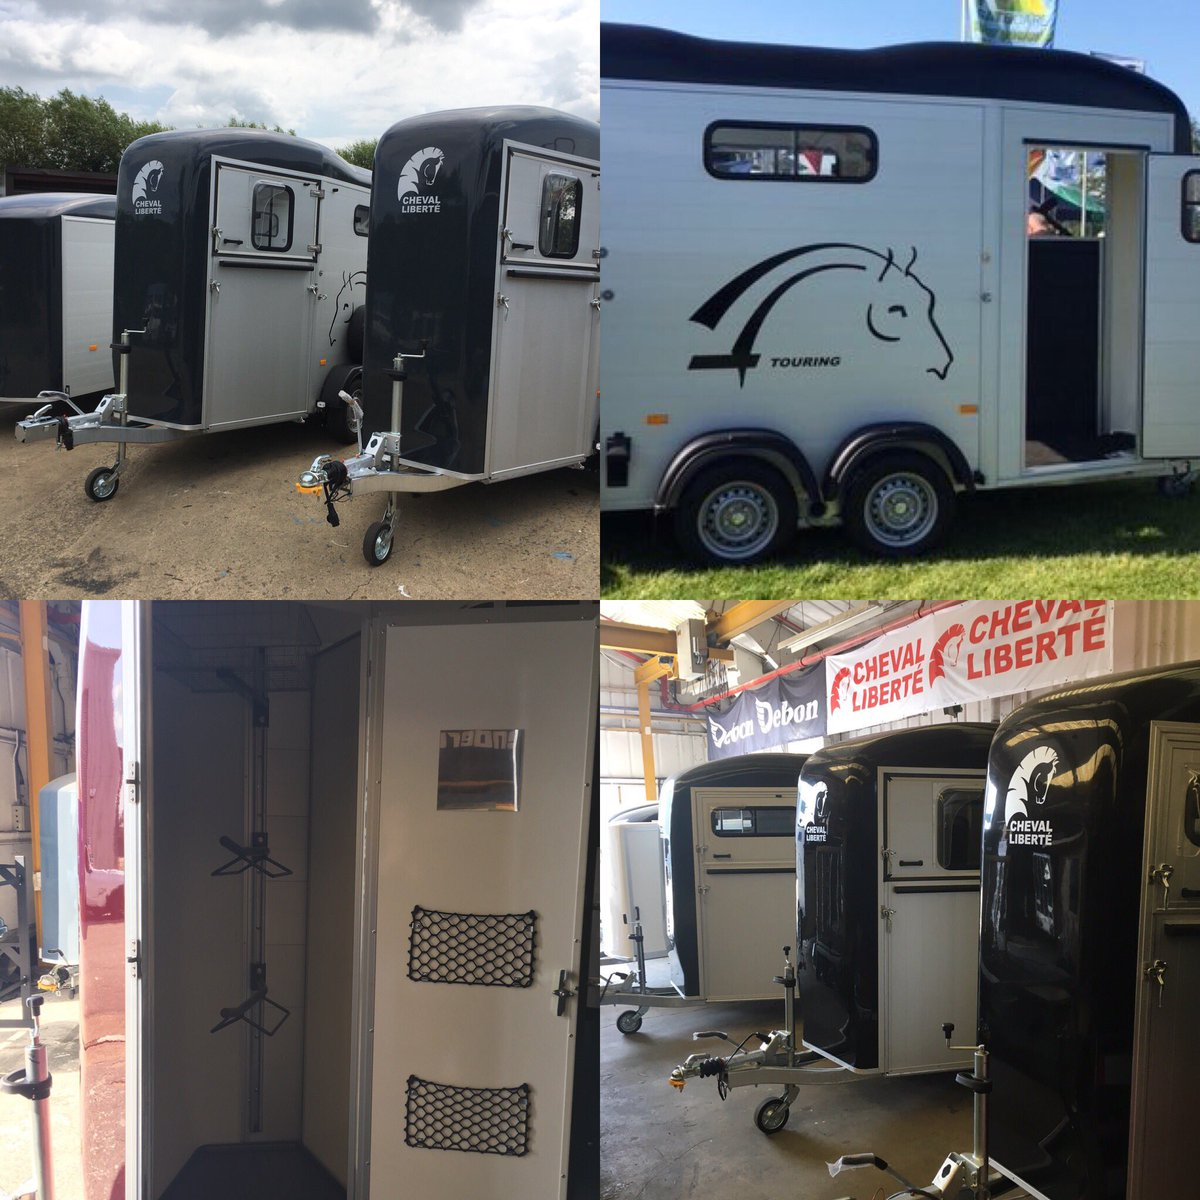 Stunning Cheval Liberte single and double horse trailers in stock. Doubles have the option of the tack room!Singles start at £4995 inc vat. Message us or please call in to take a look. #chevalliberte #touringone #touringcountry #besthorsetrailer #ponyclub #equestrianpic.twitter.com/48q4N5wNoP